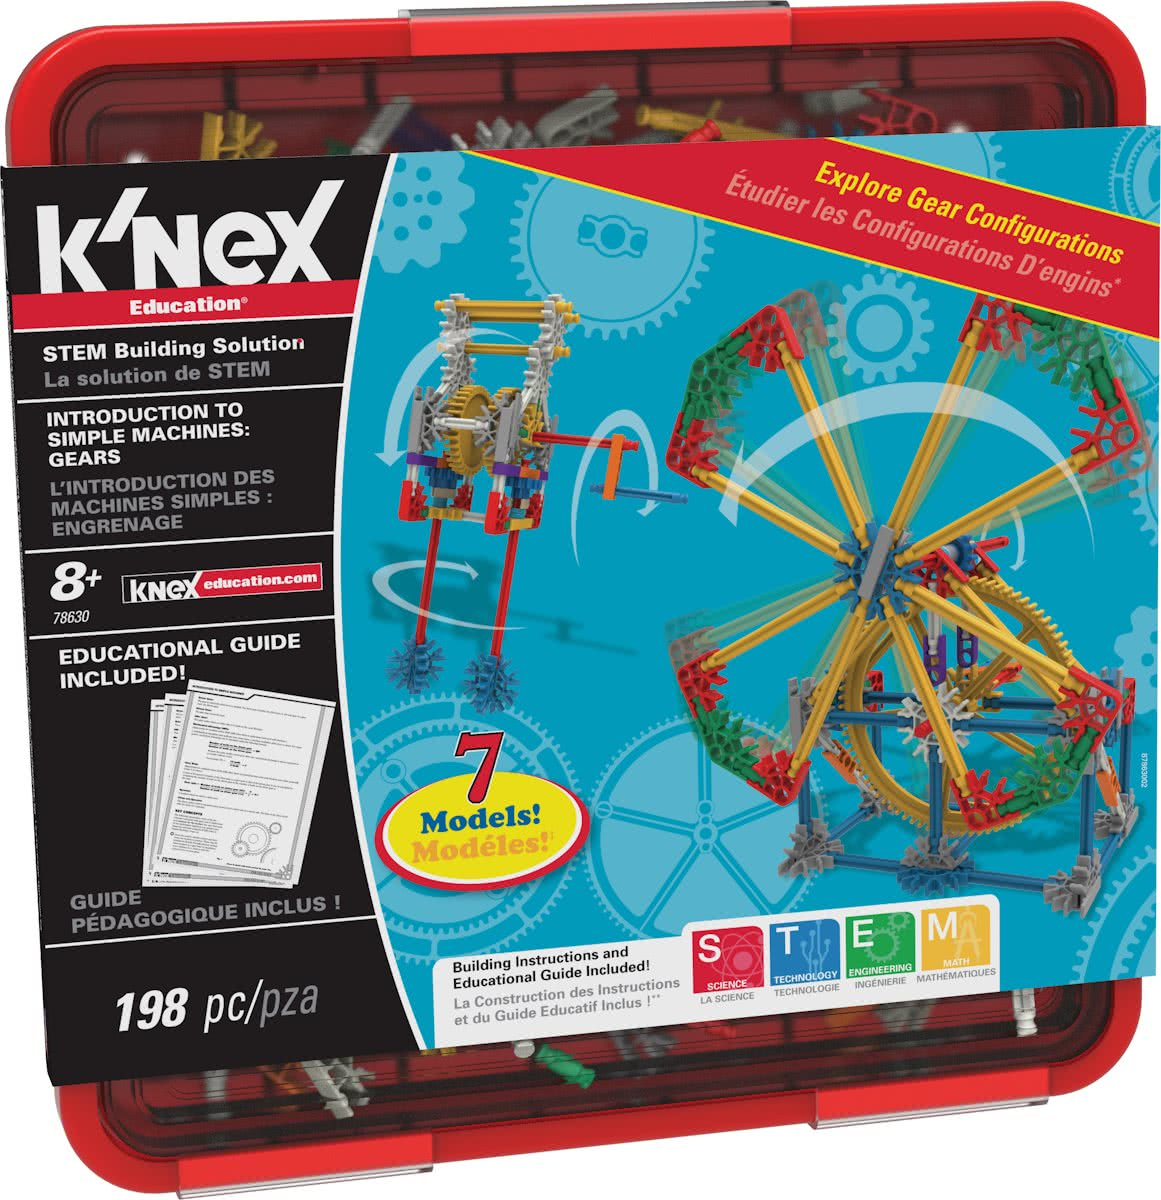 KNEX Education Intro to Simple Machines: Gears - Bouwset